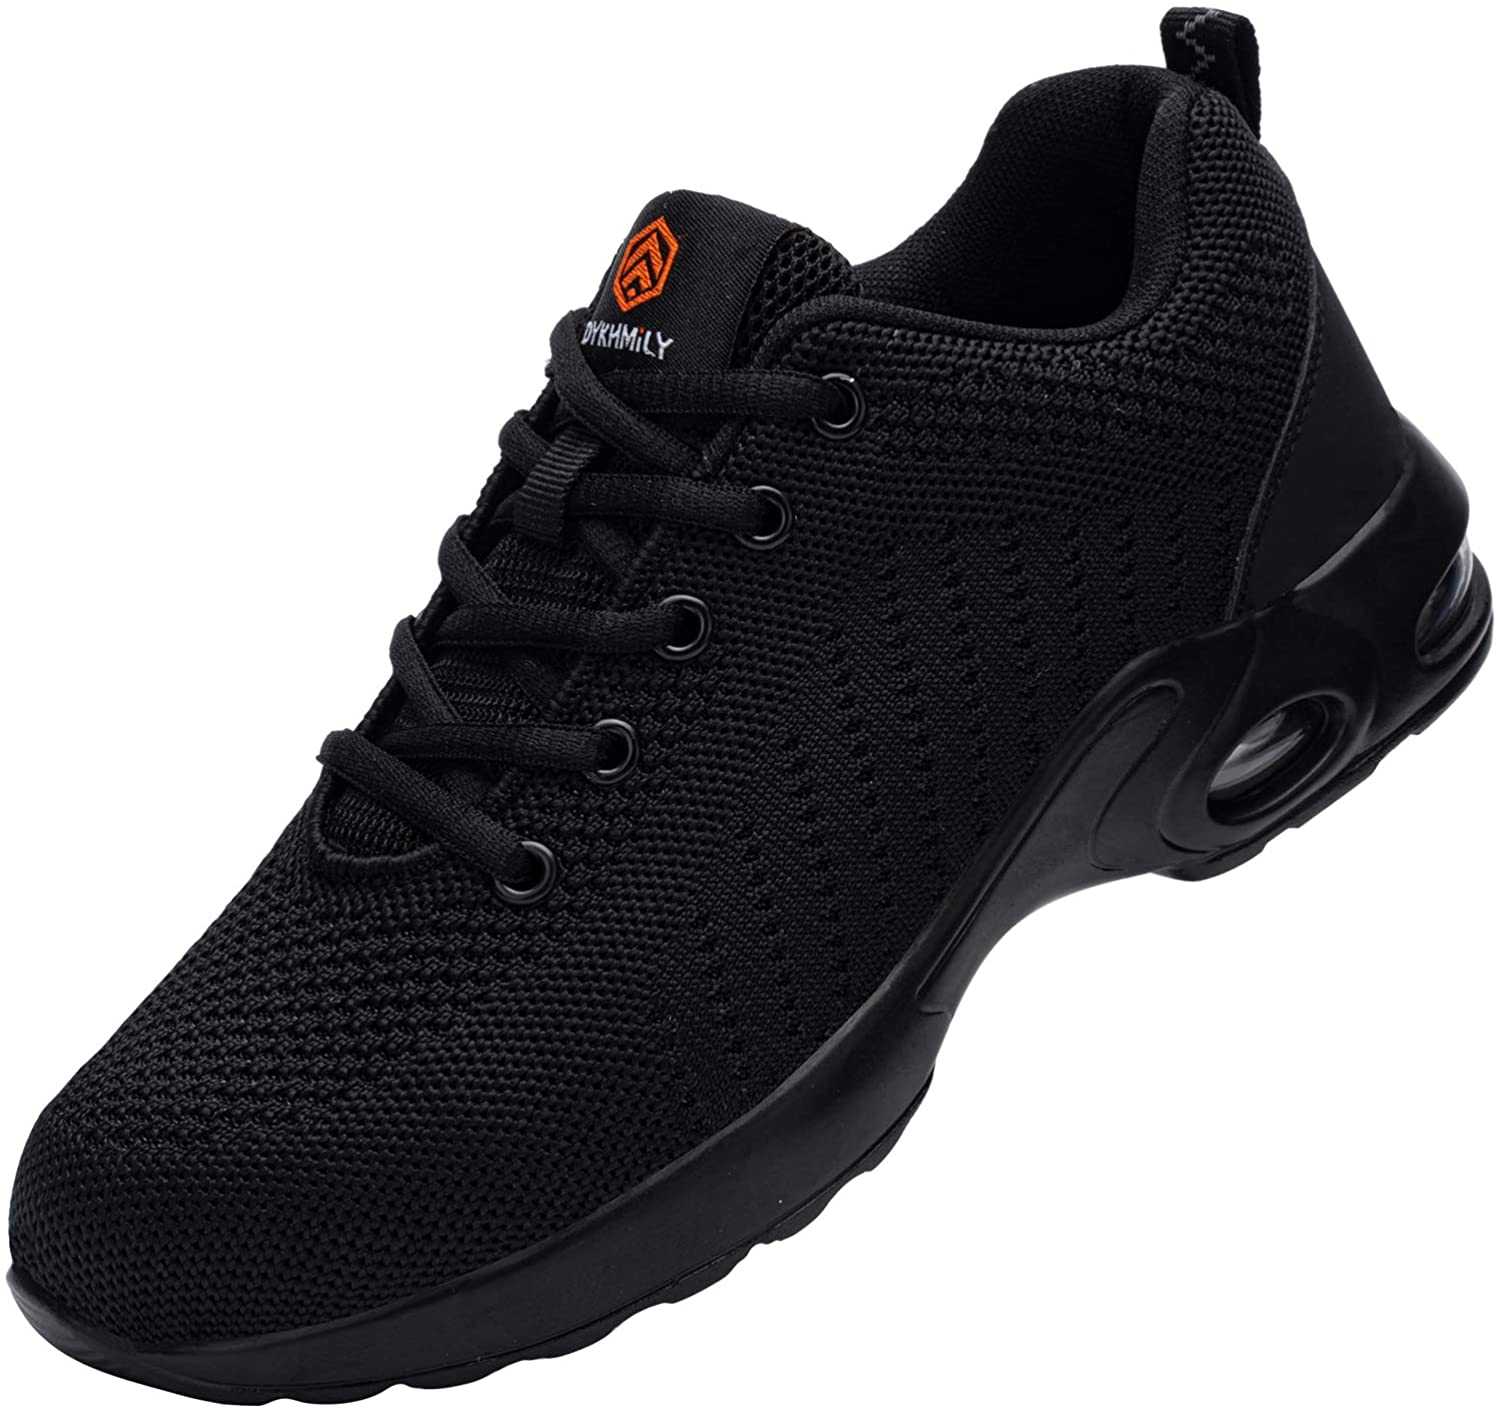 DYKHMILY Steel Toe Shoes for Men Women Lightweight Safety Shoes Slip Resistant Breathable Puncture Proof Work Sneakers